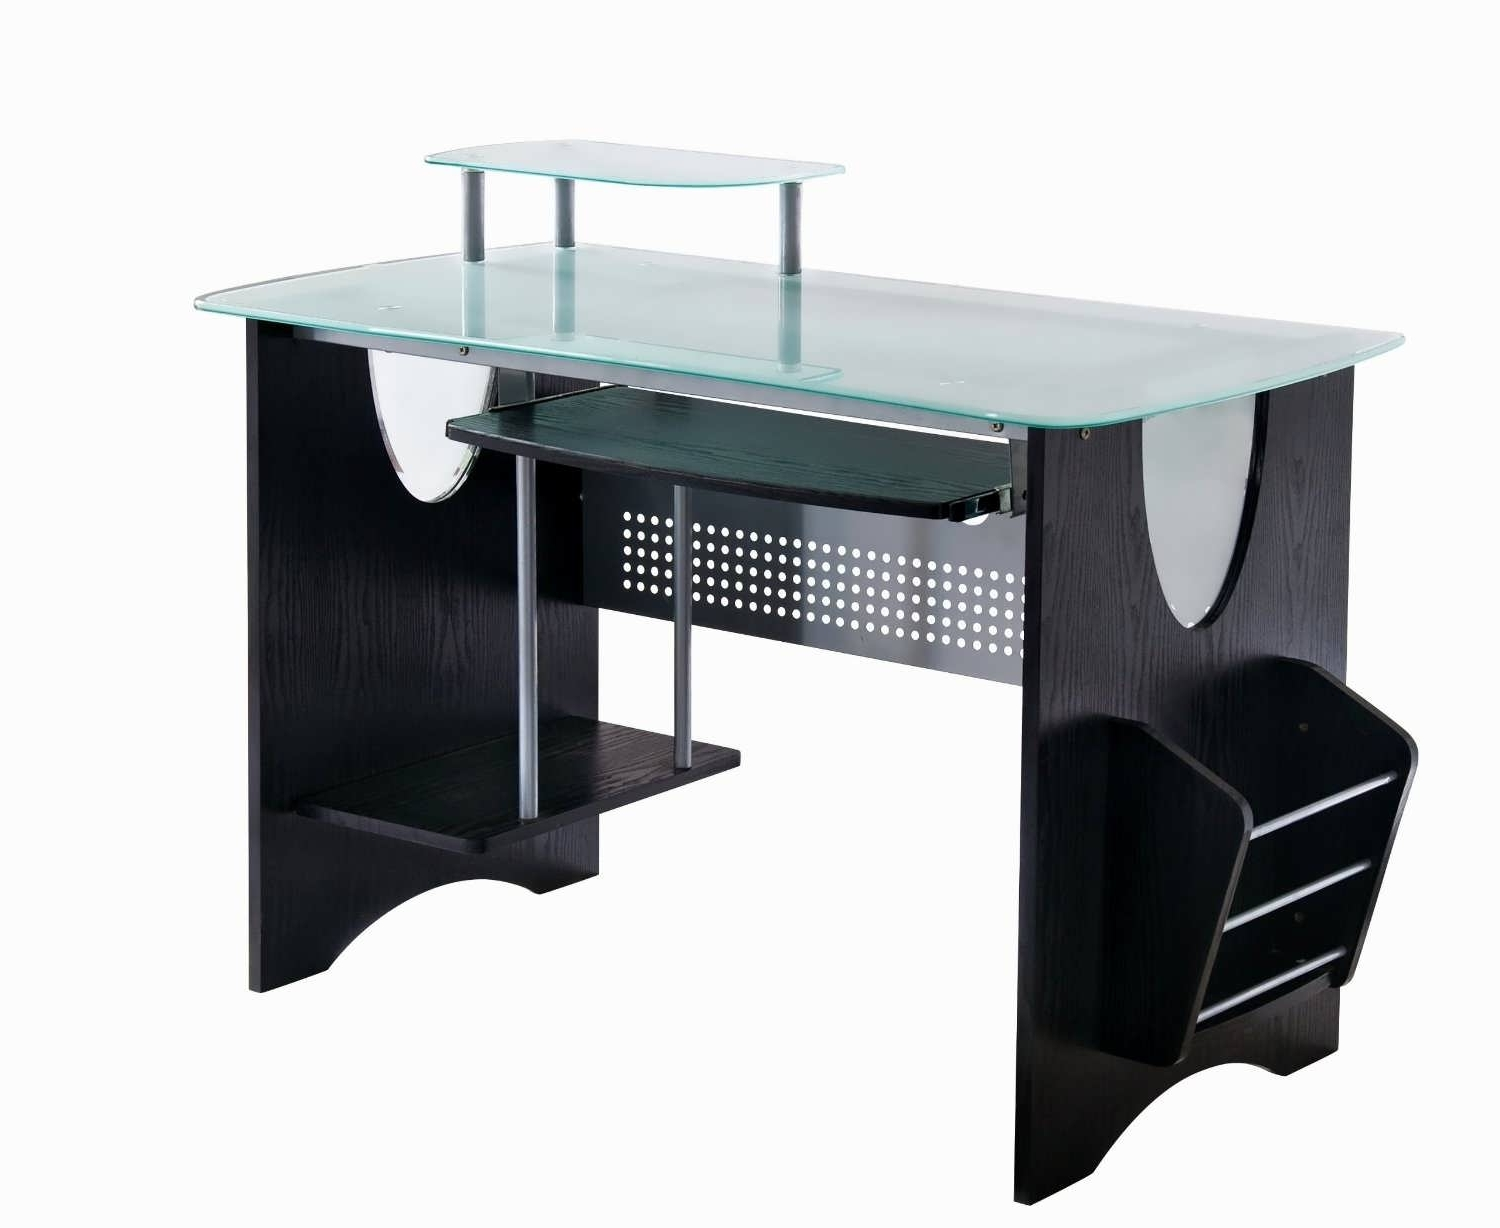 Computer Desks At Big Lots Regarding Best And Newest Office Desk : Small Corner Computer Desk Big Lots Furniture Build (View 4 of 20)